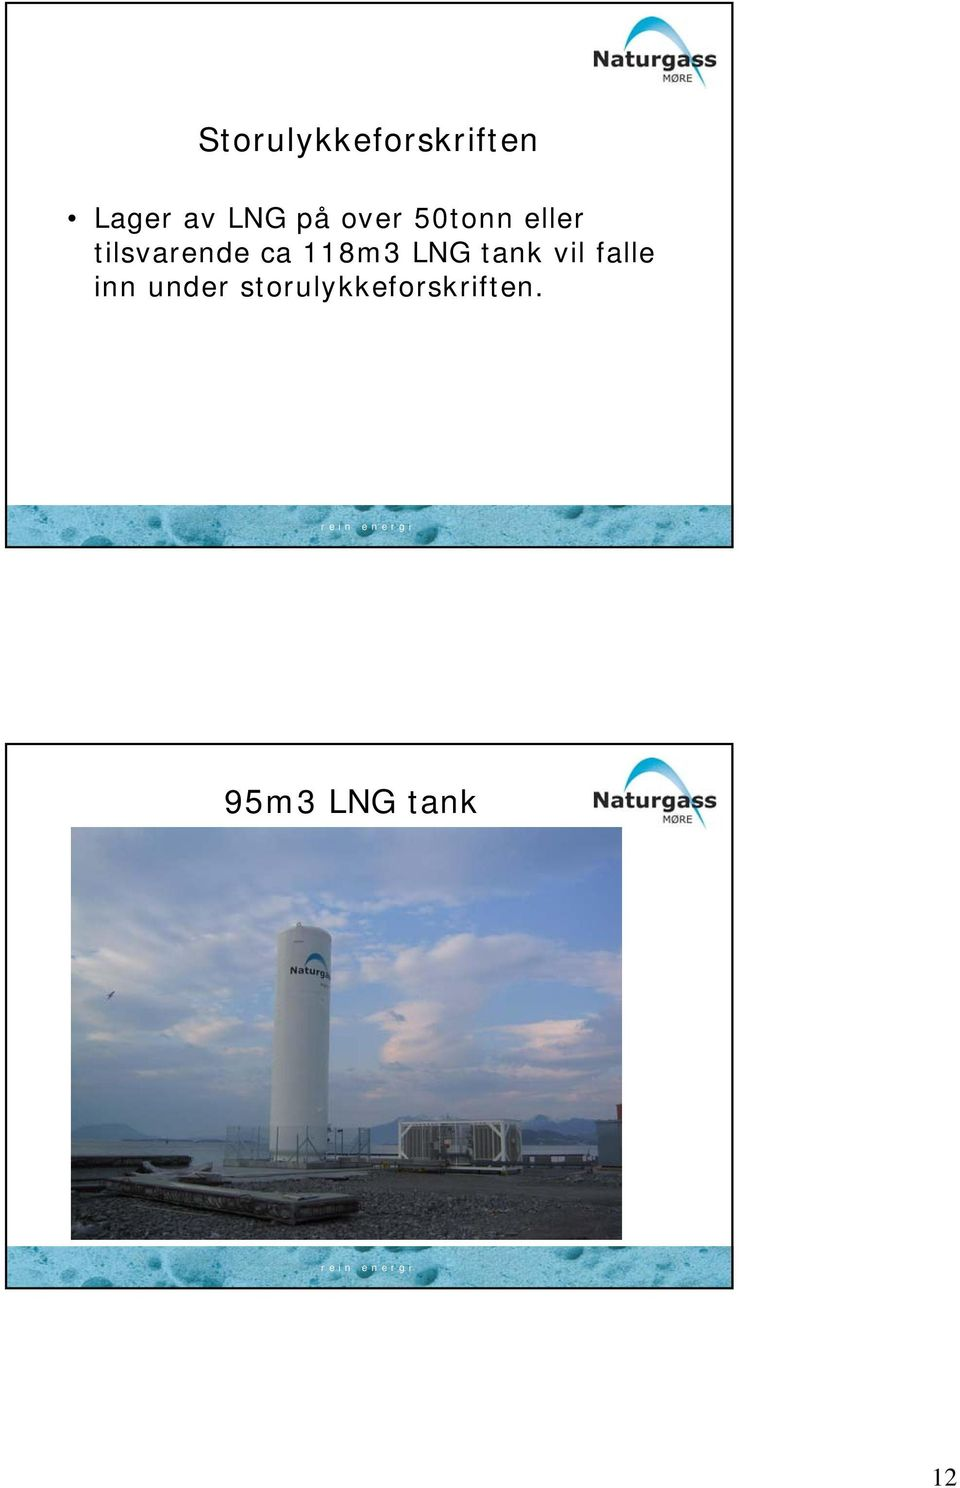 118m3 LNG tank vil falle inn under